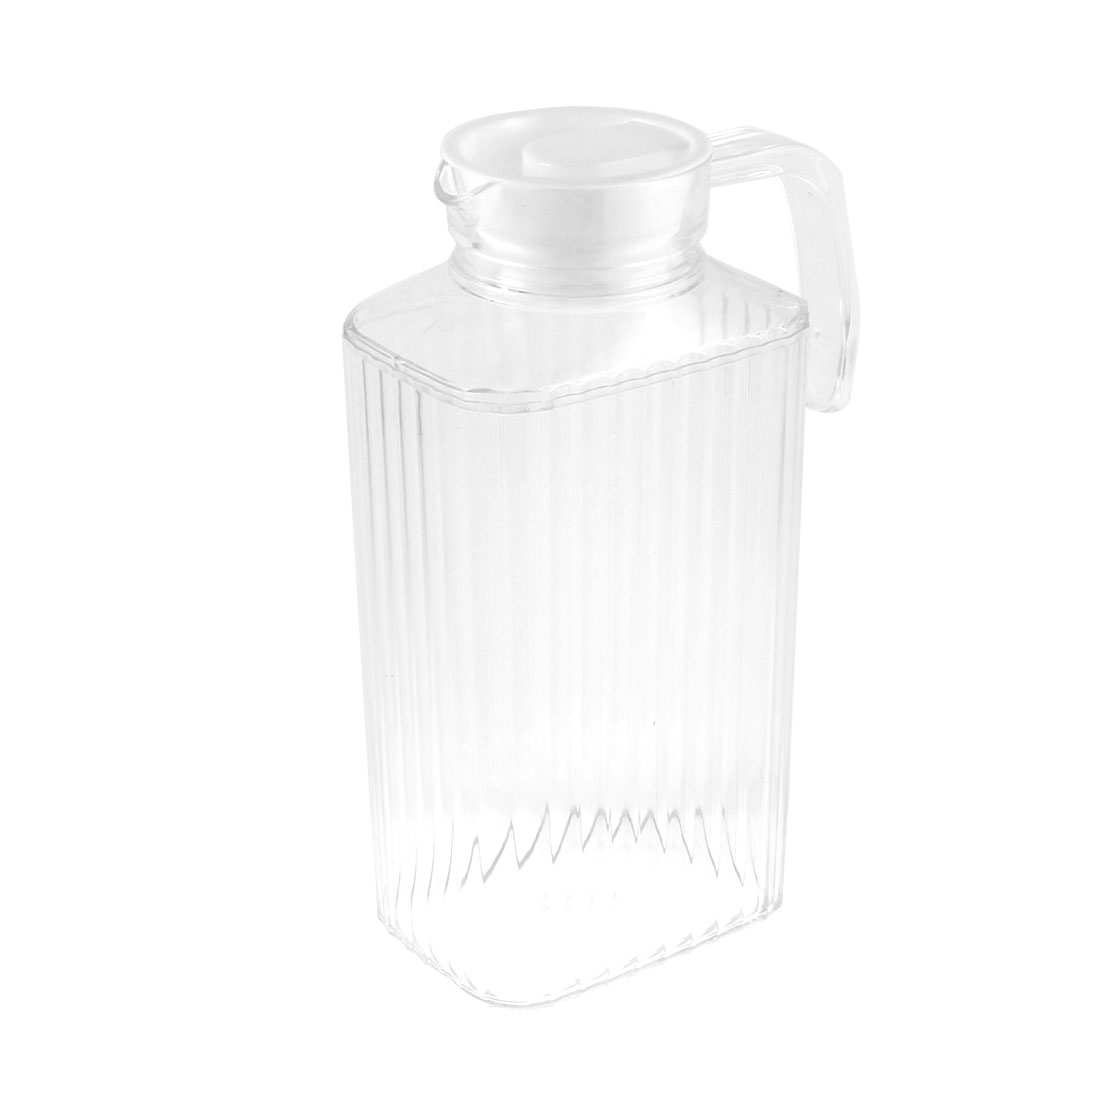 Plastic Stripes Pattern Cooling Cooler Water Pitcher Drink Holder 2000ml